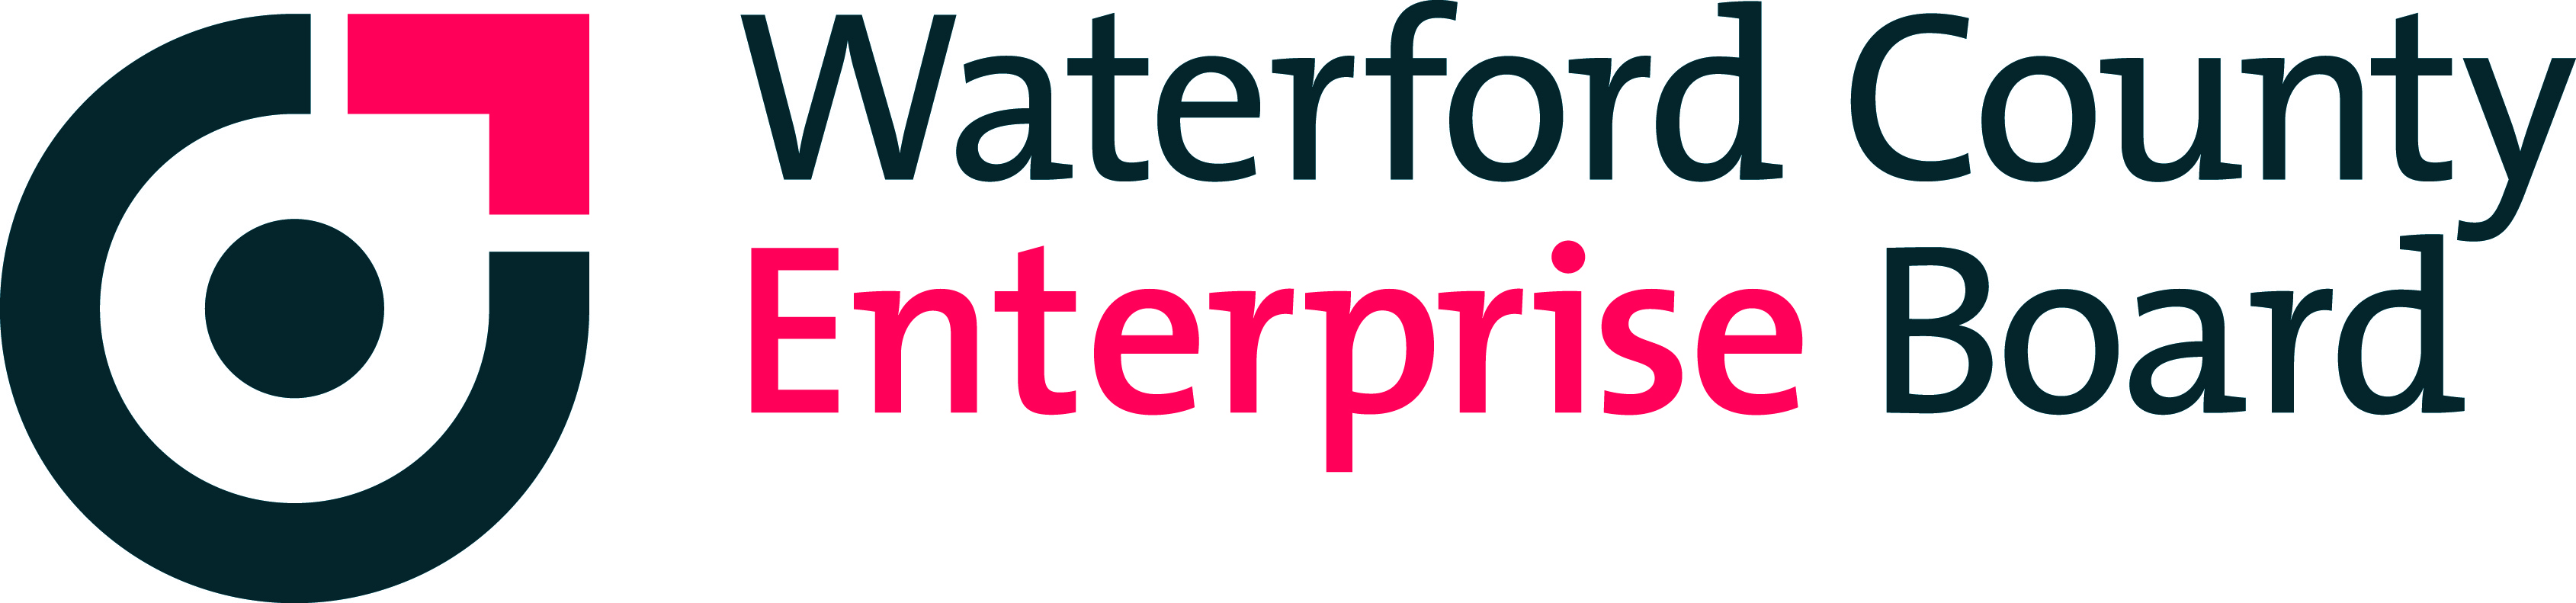 Waterford County Enterprise Board